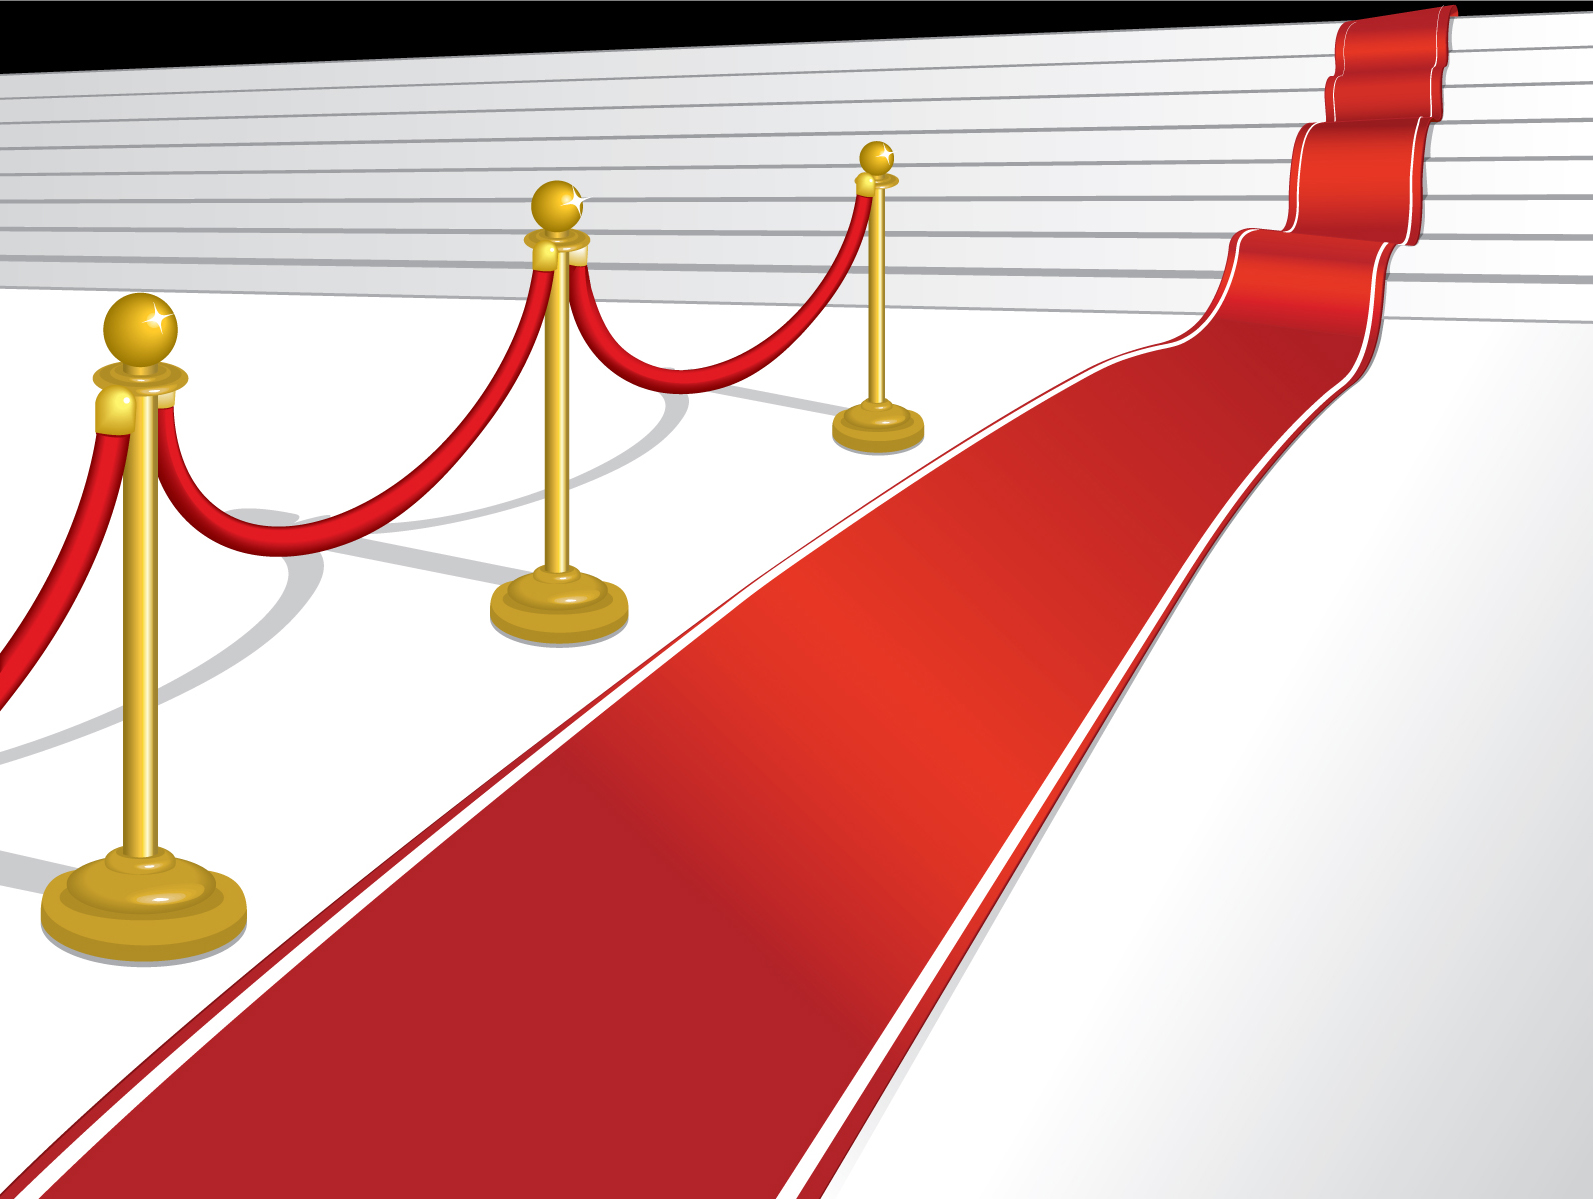 Oregon Independent Film Festival Red Carpet additionally Clip Of Eclipse The Volturi Observe The Newborns likewise Starwars   Reveals New The Last Jedi Character And More Information On Porgs as well Met Gala 2015 Lady Gaga In Balenciaga likewise Hollywood Shooting Star Award Trophy. on red carpet props